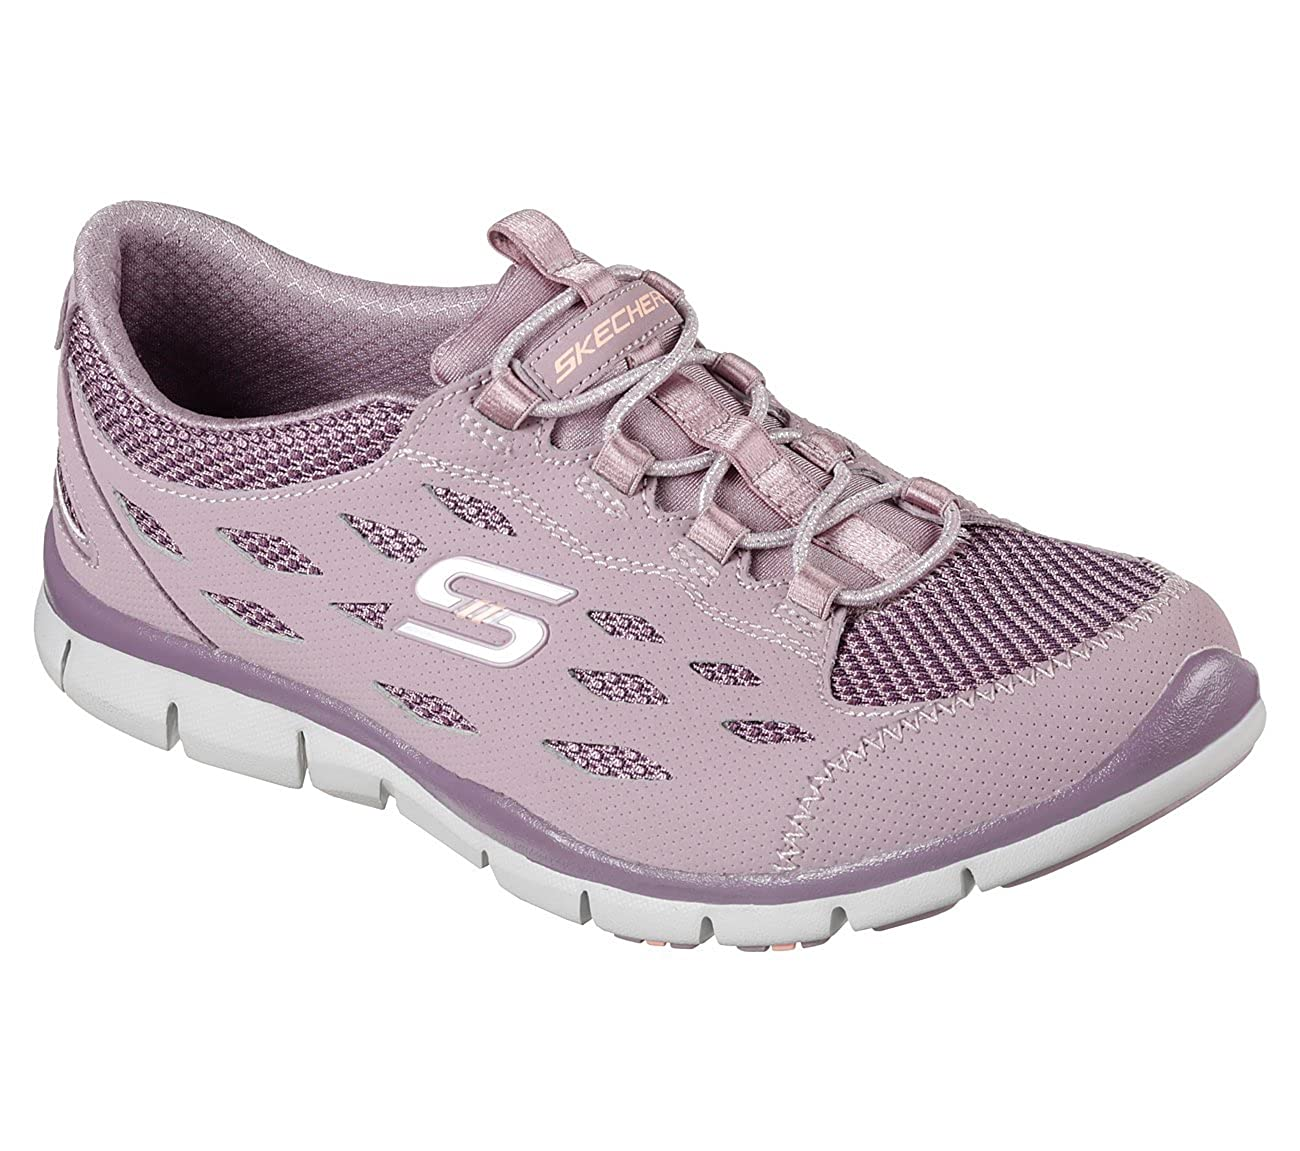 Skechers Sport Women's Gratis-In Motion Fashion Sneaker 22169